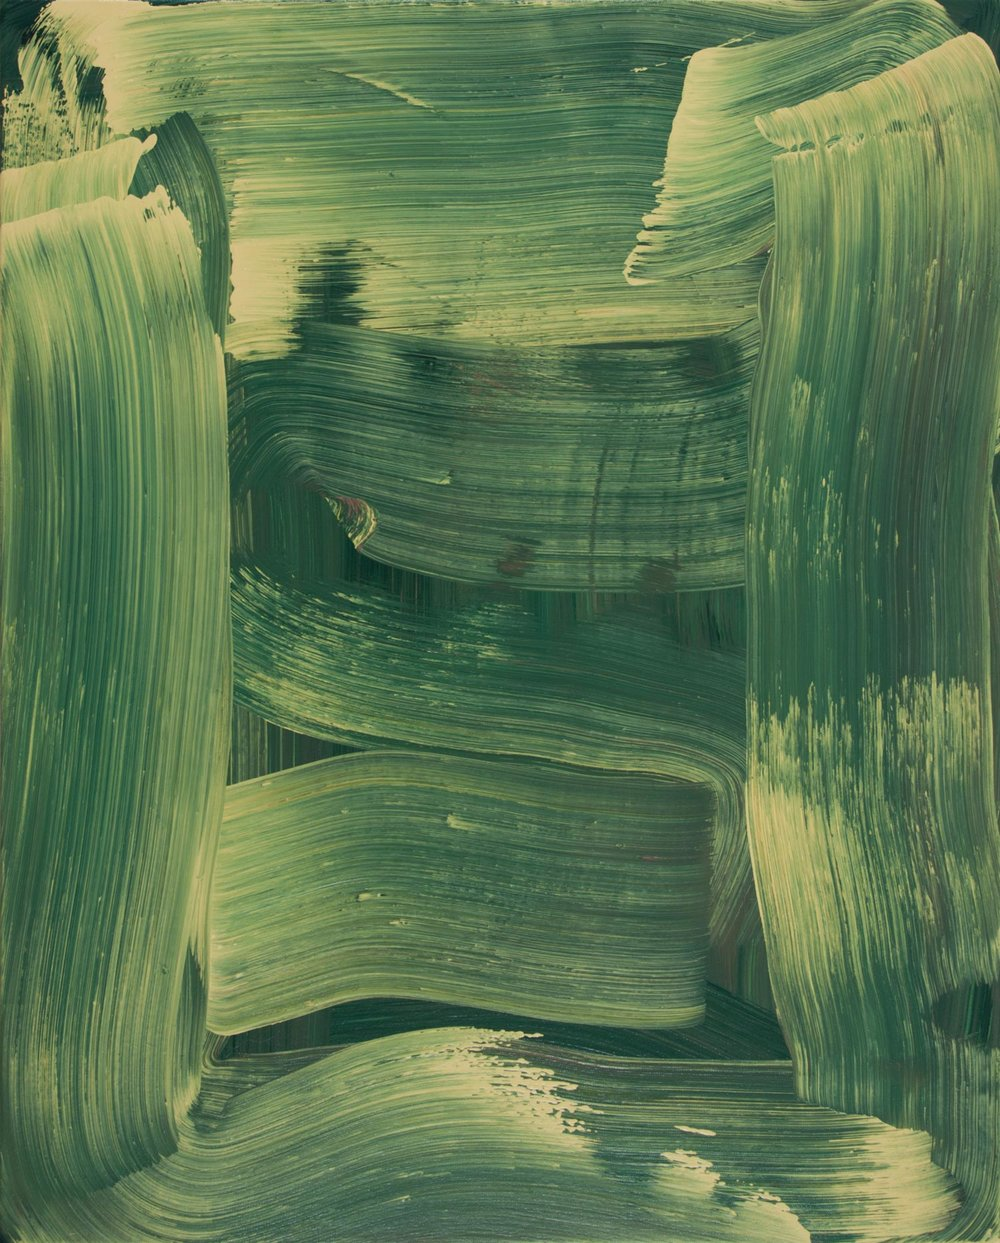 Serpentine , 2014 oil on canvas 30 x 24 in.